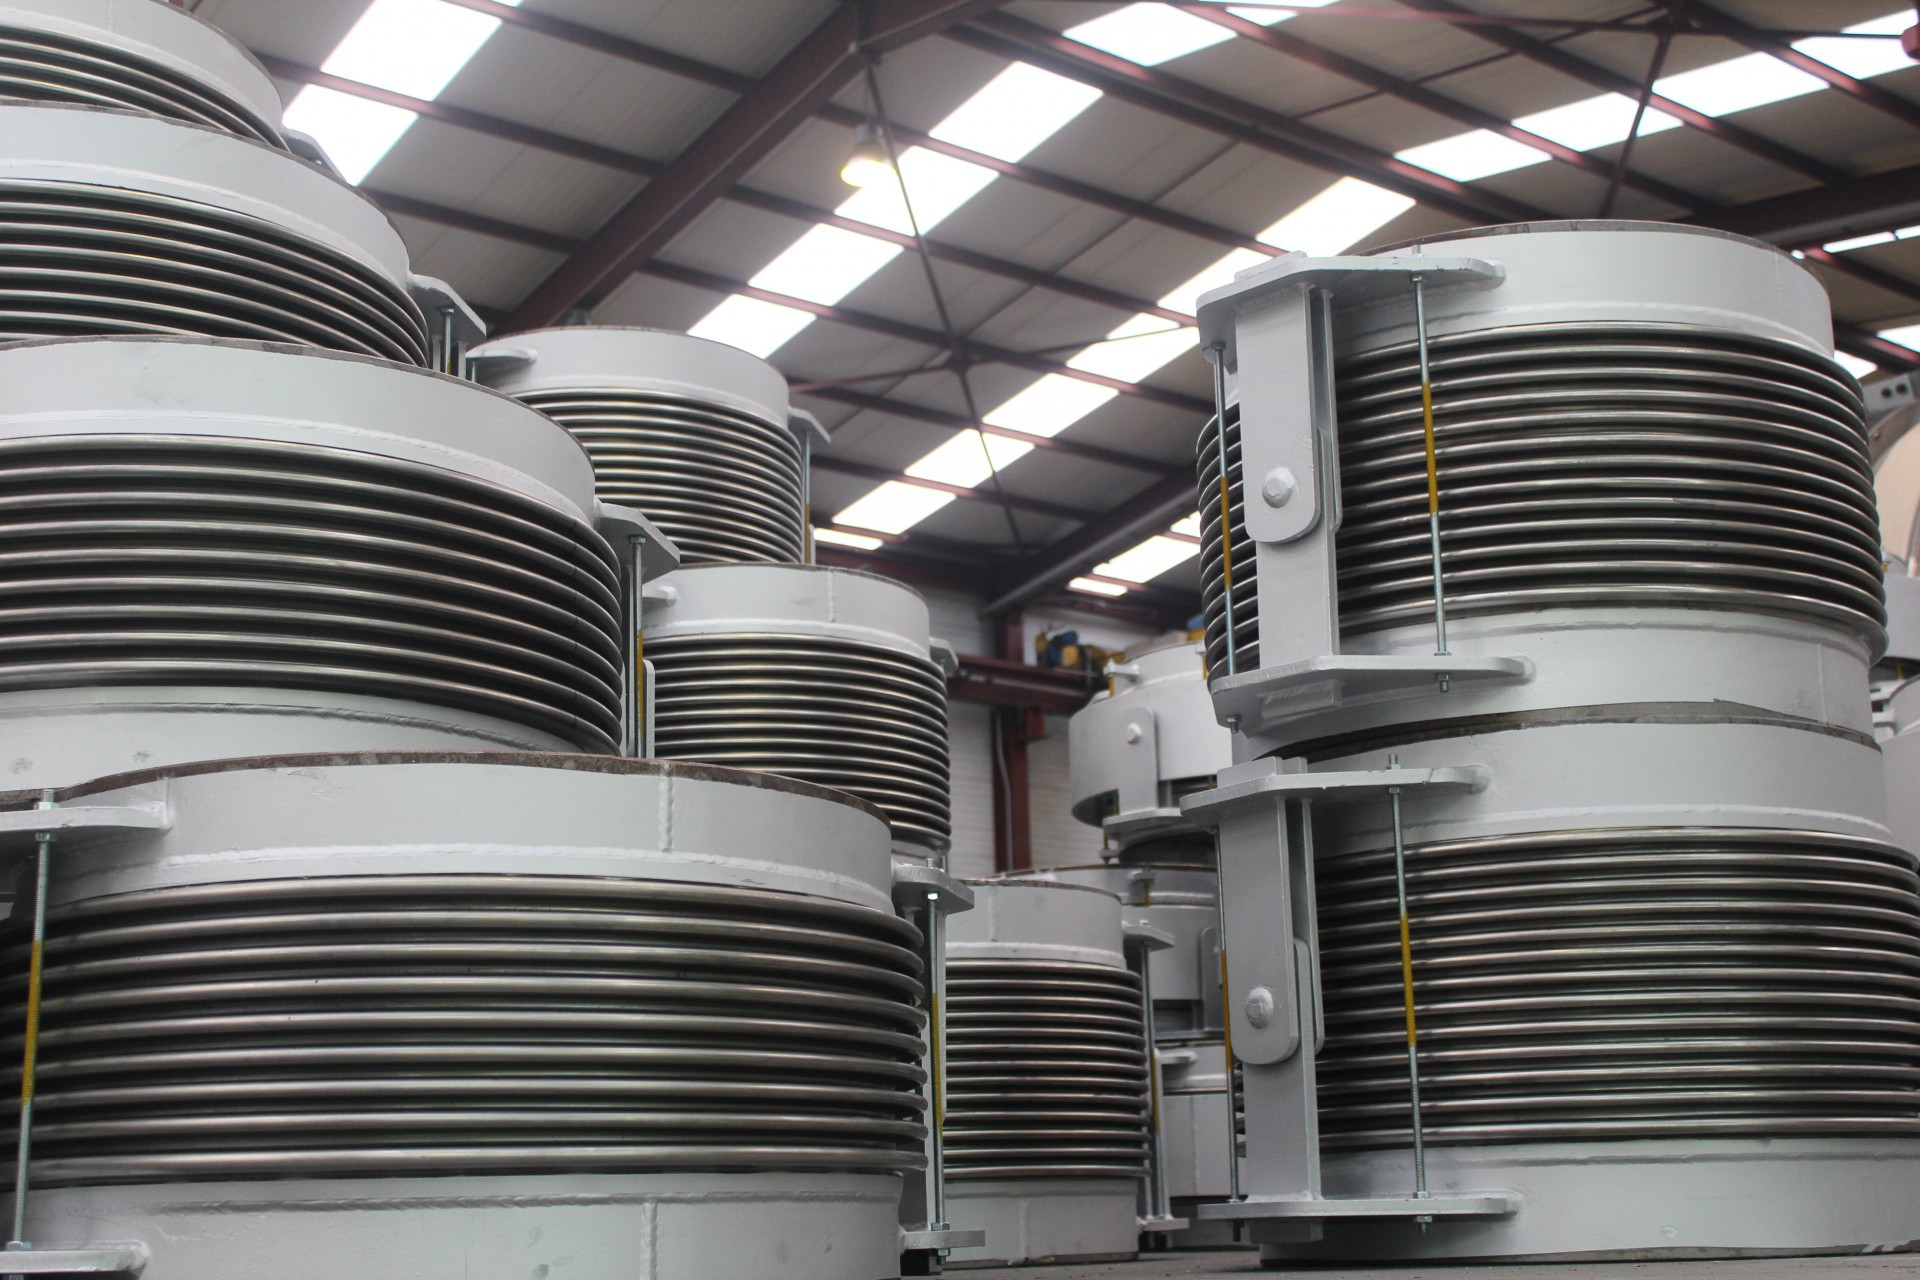 Gimbal and Hinged Expansion Joints for Aghios Dimitrios Power Plant